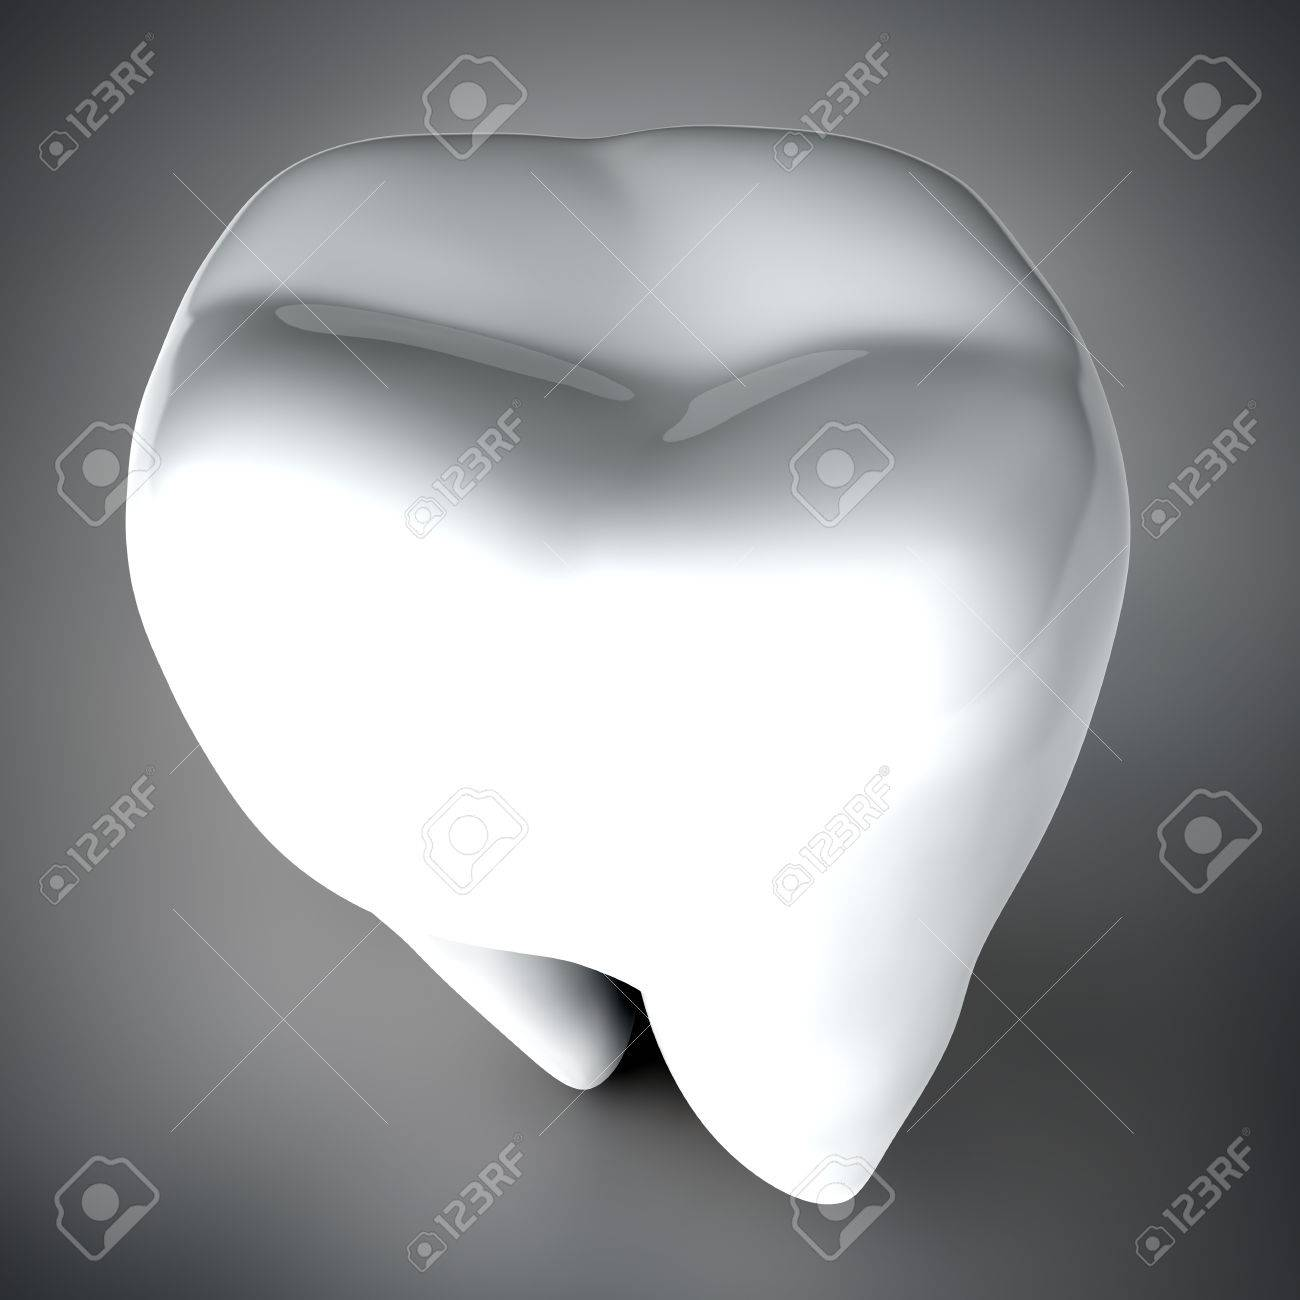 Human tooth 3D render Stock Photo - 72264100